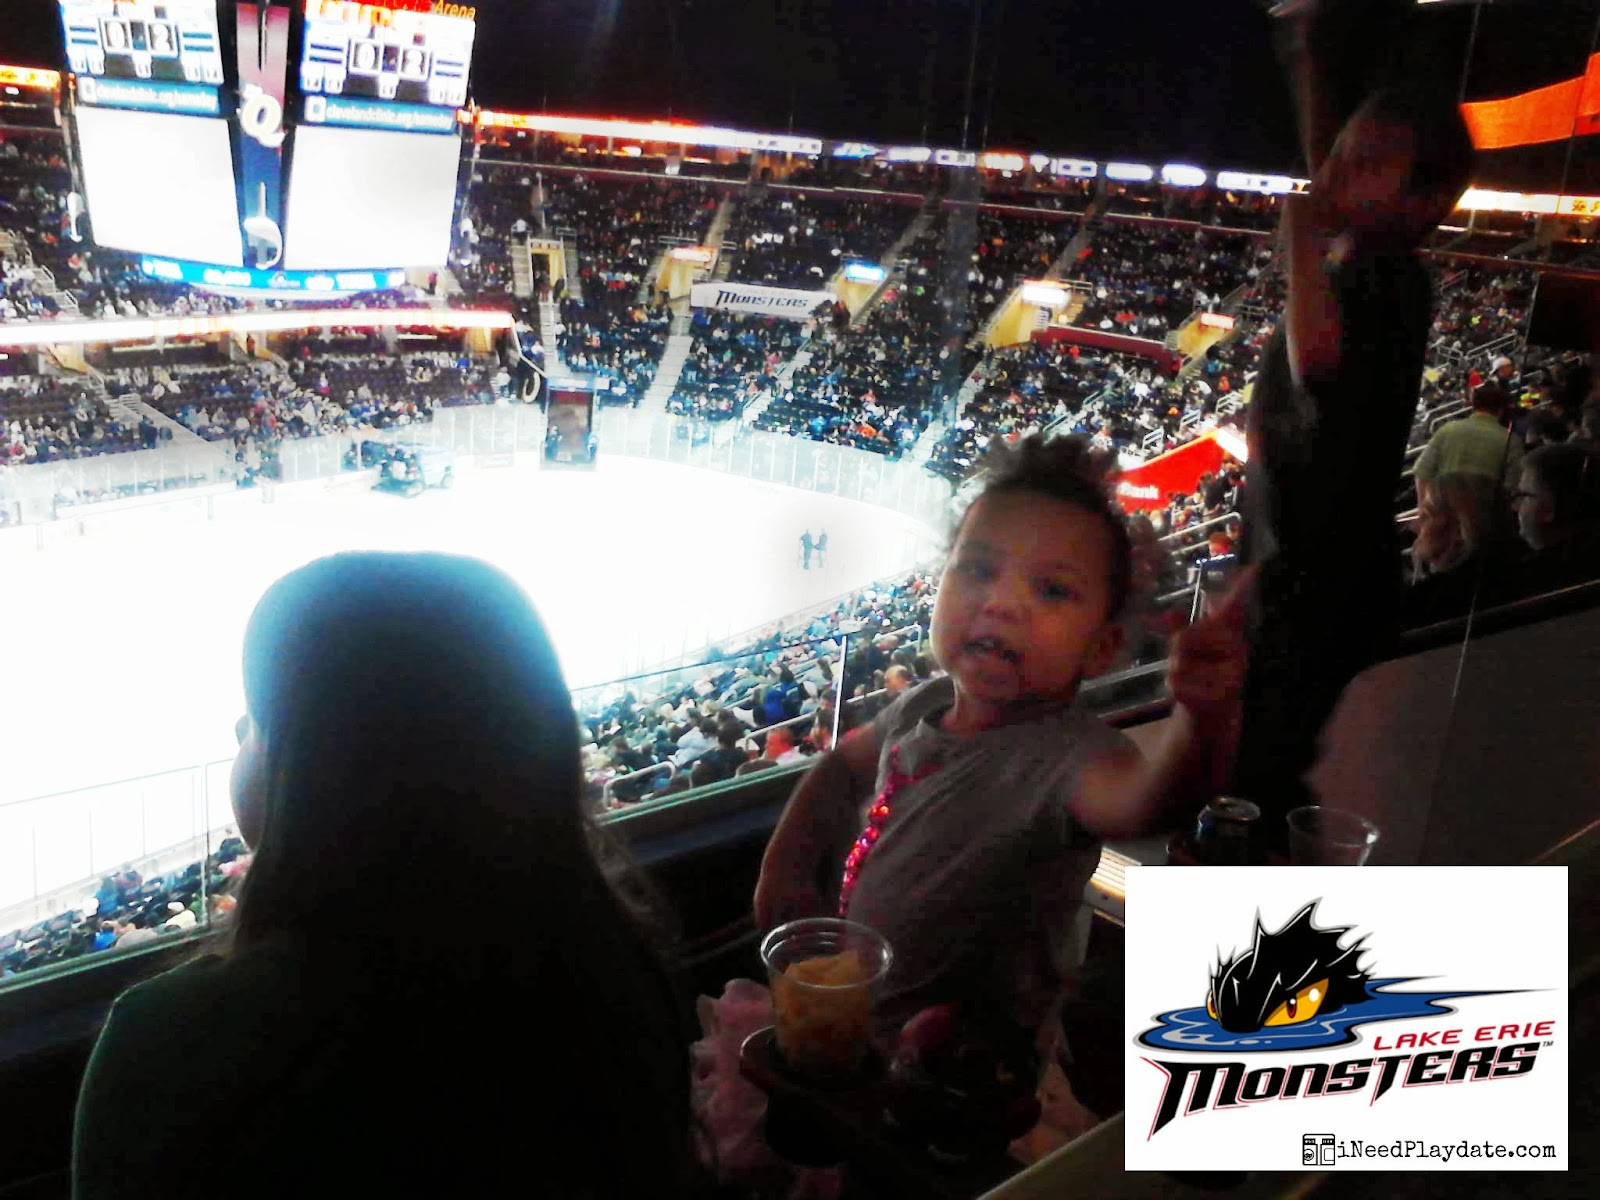 5 Facts About @MonstersHockey That Will Impress Your Mom #sponsored